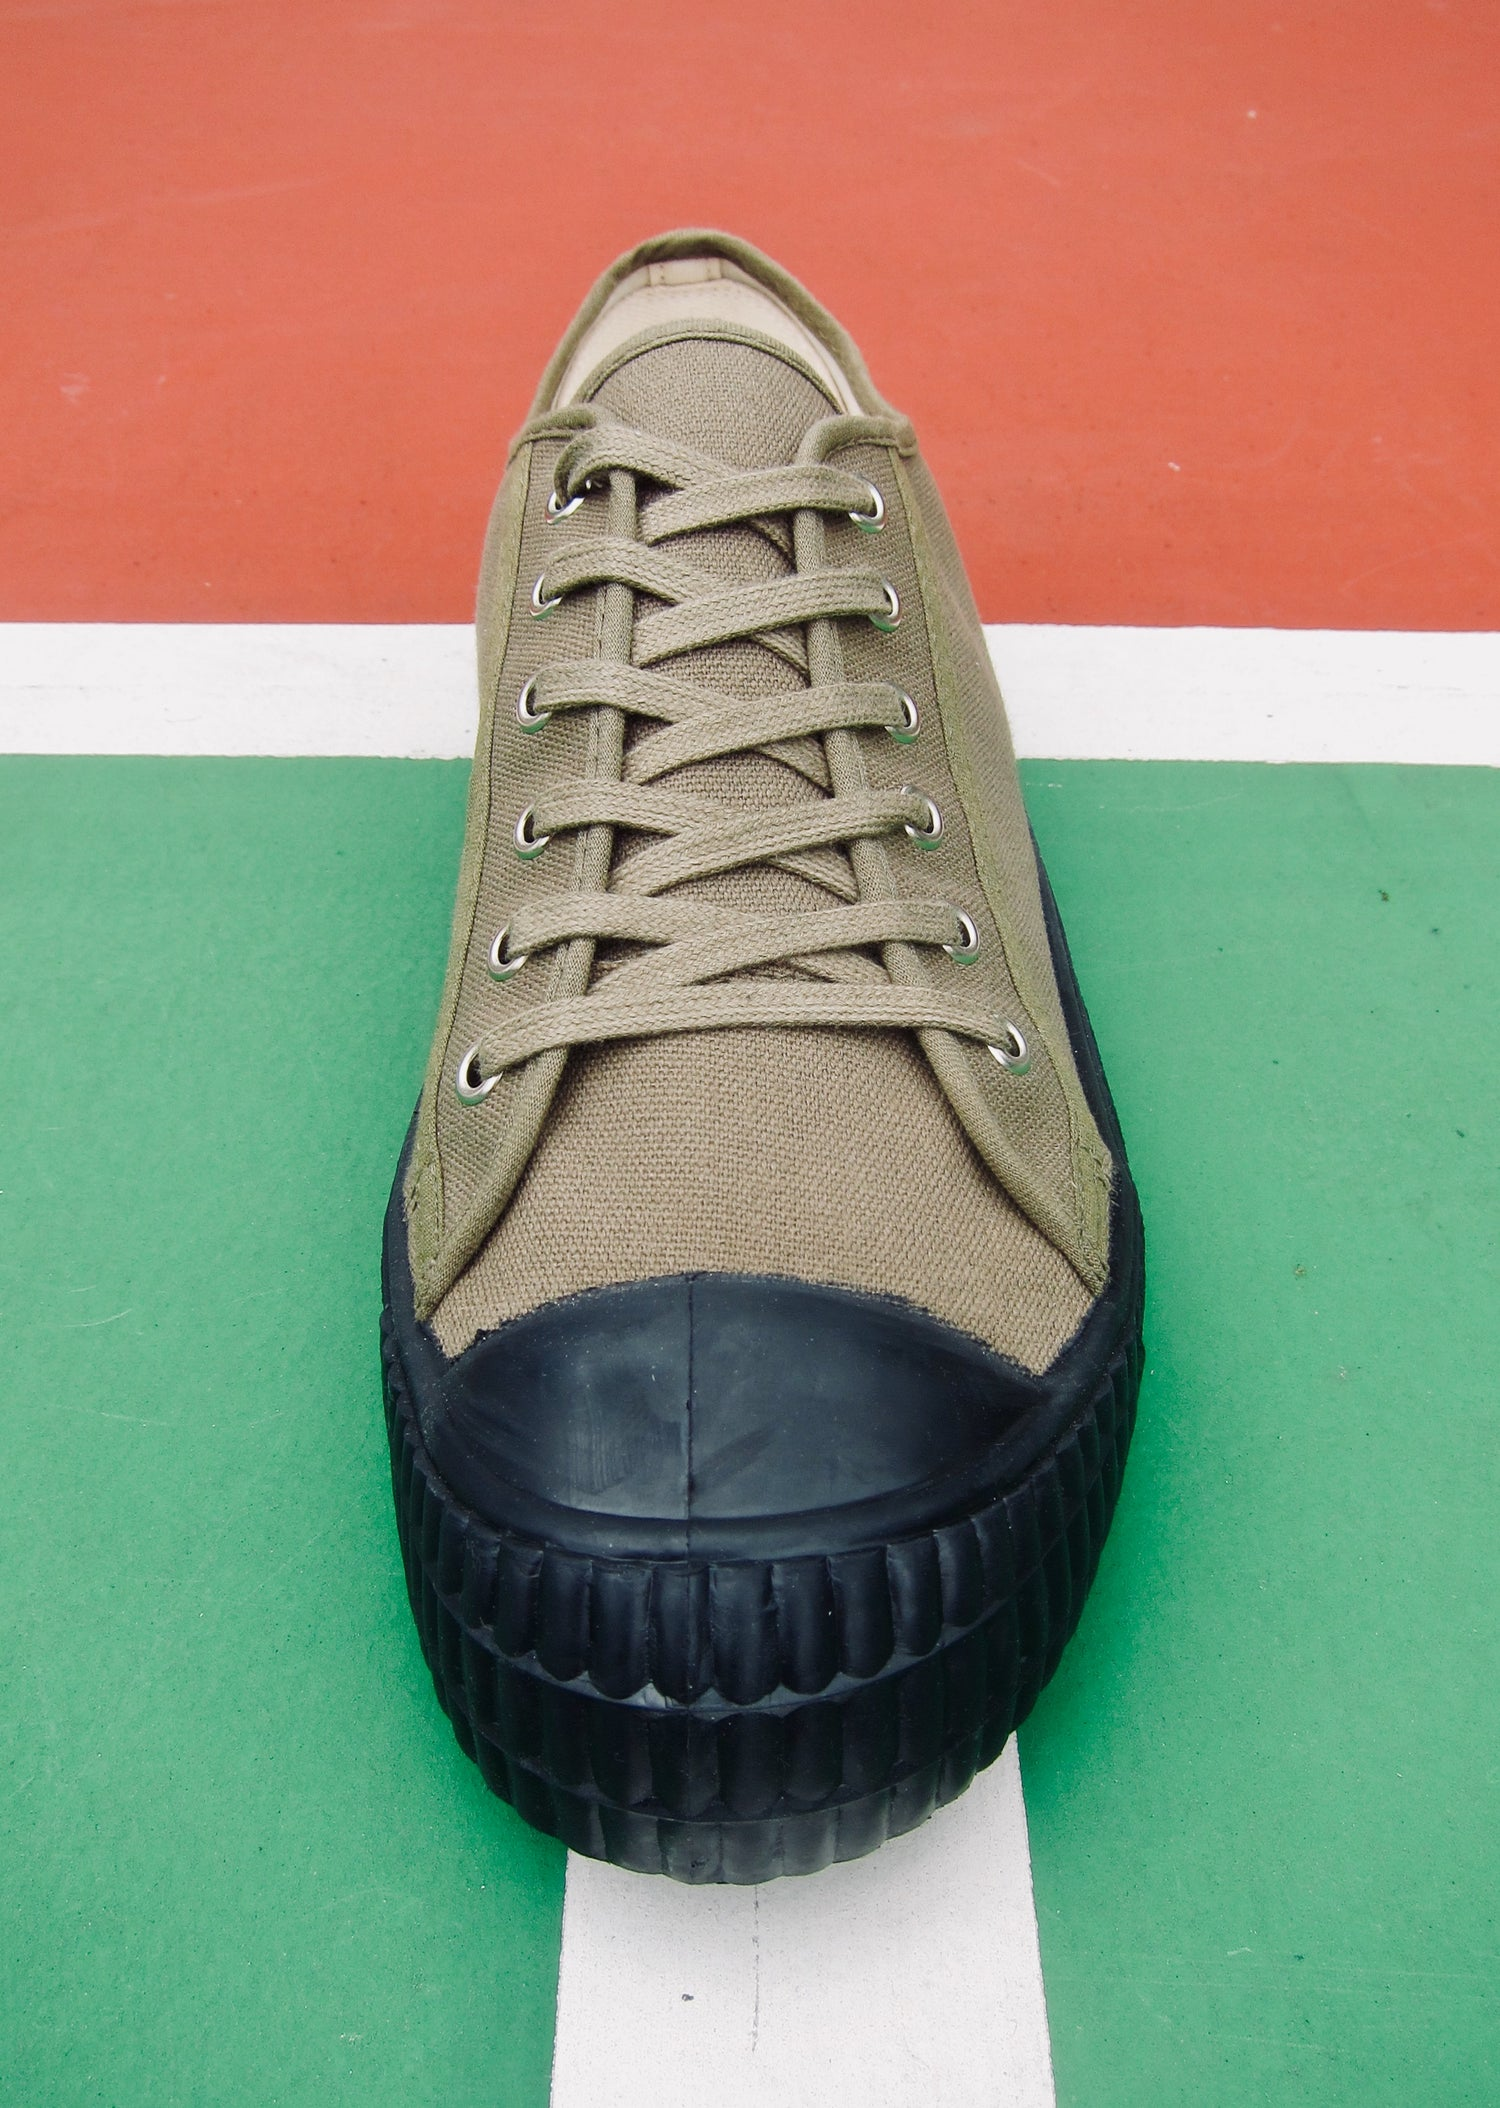 Image of ZDA heritage army trainer lo canvas sneaker shoes made in Slovakia